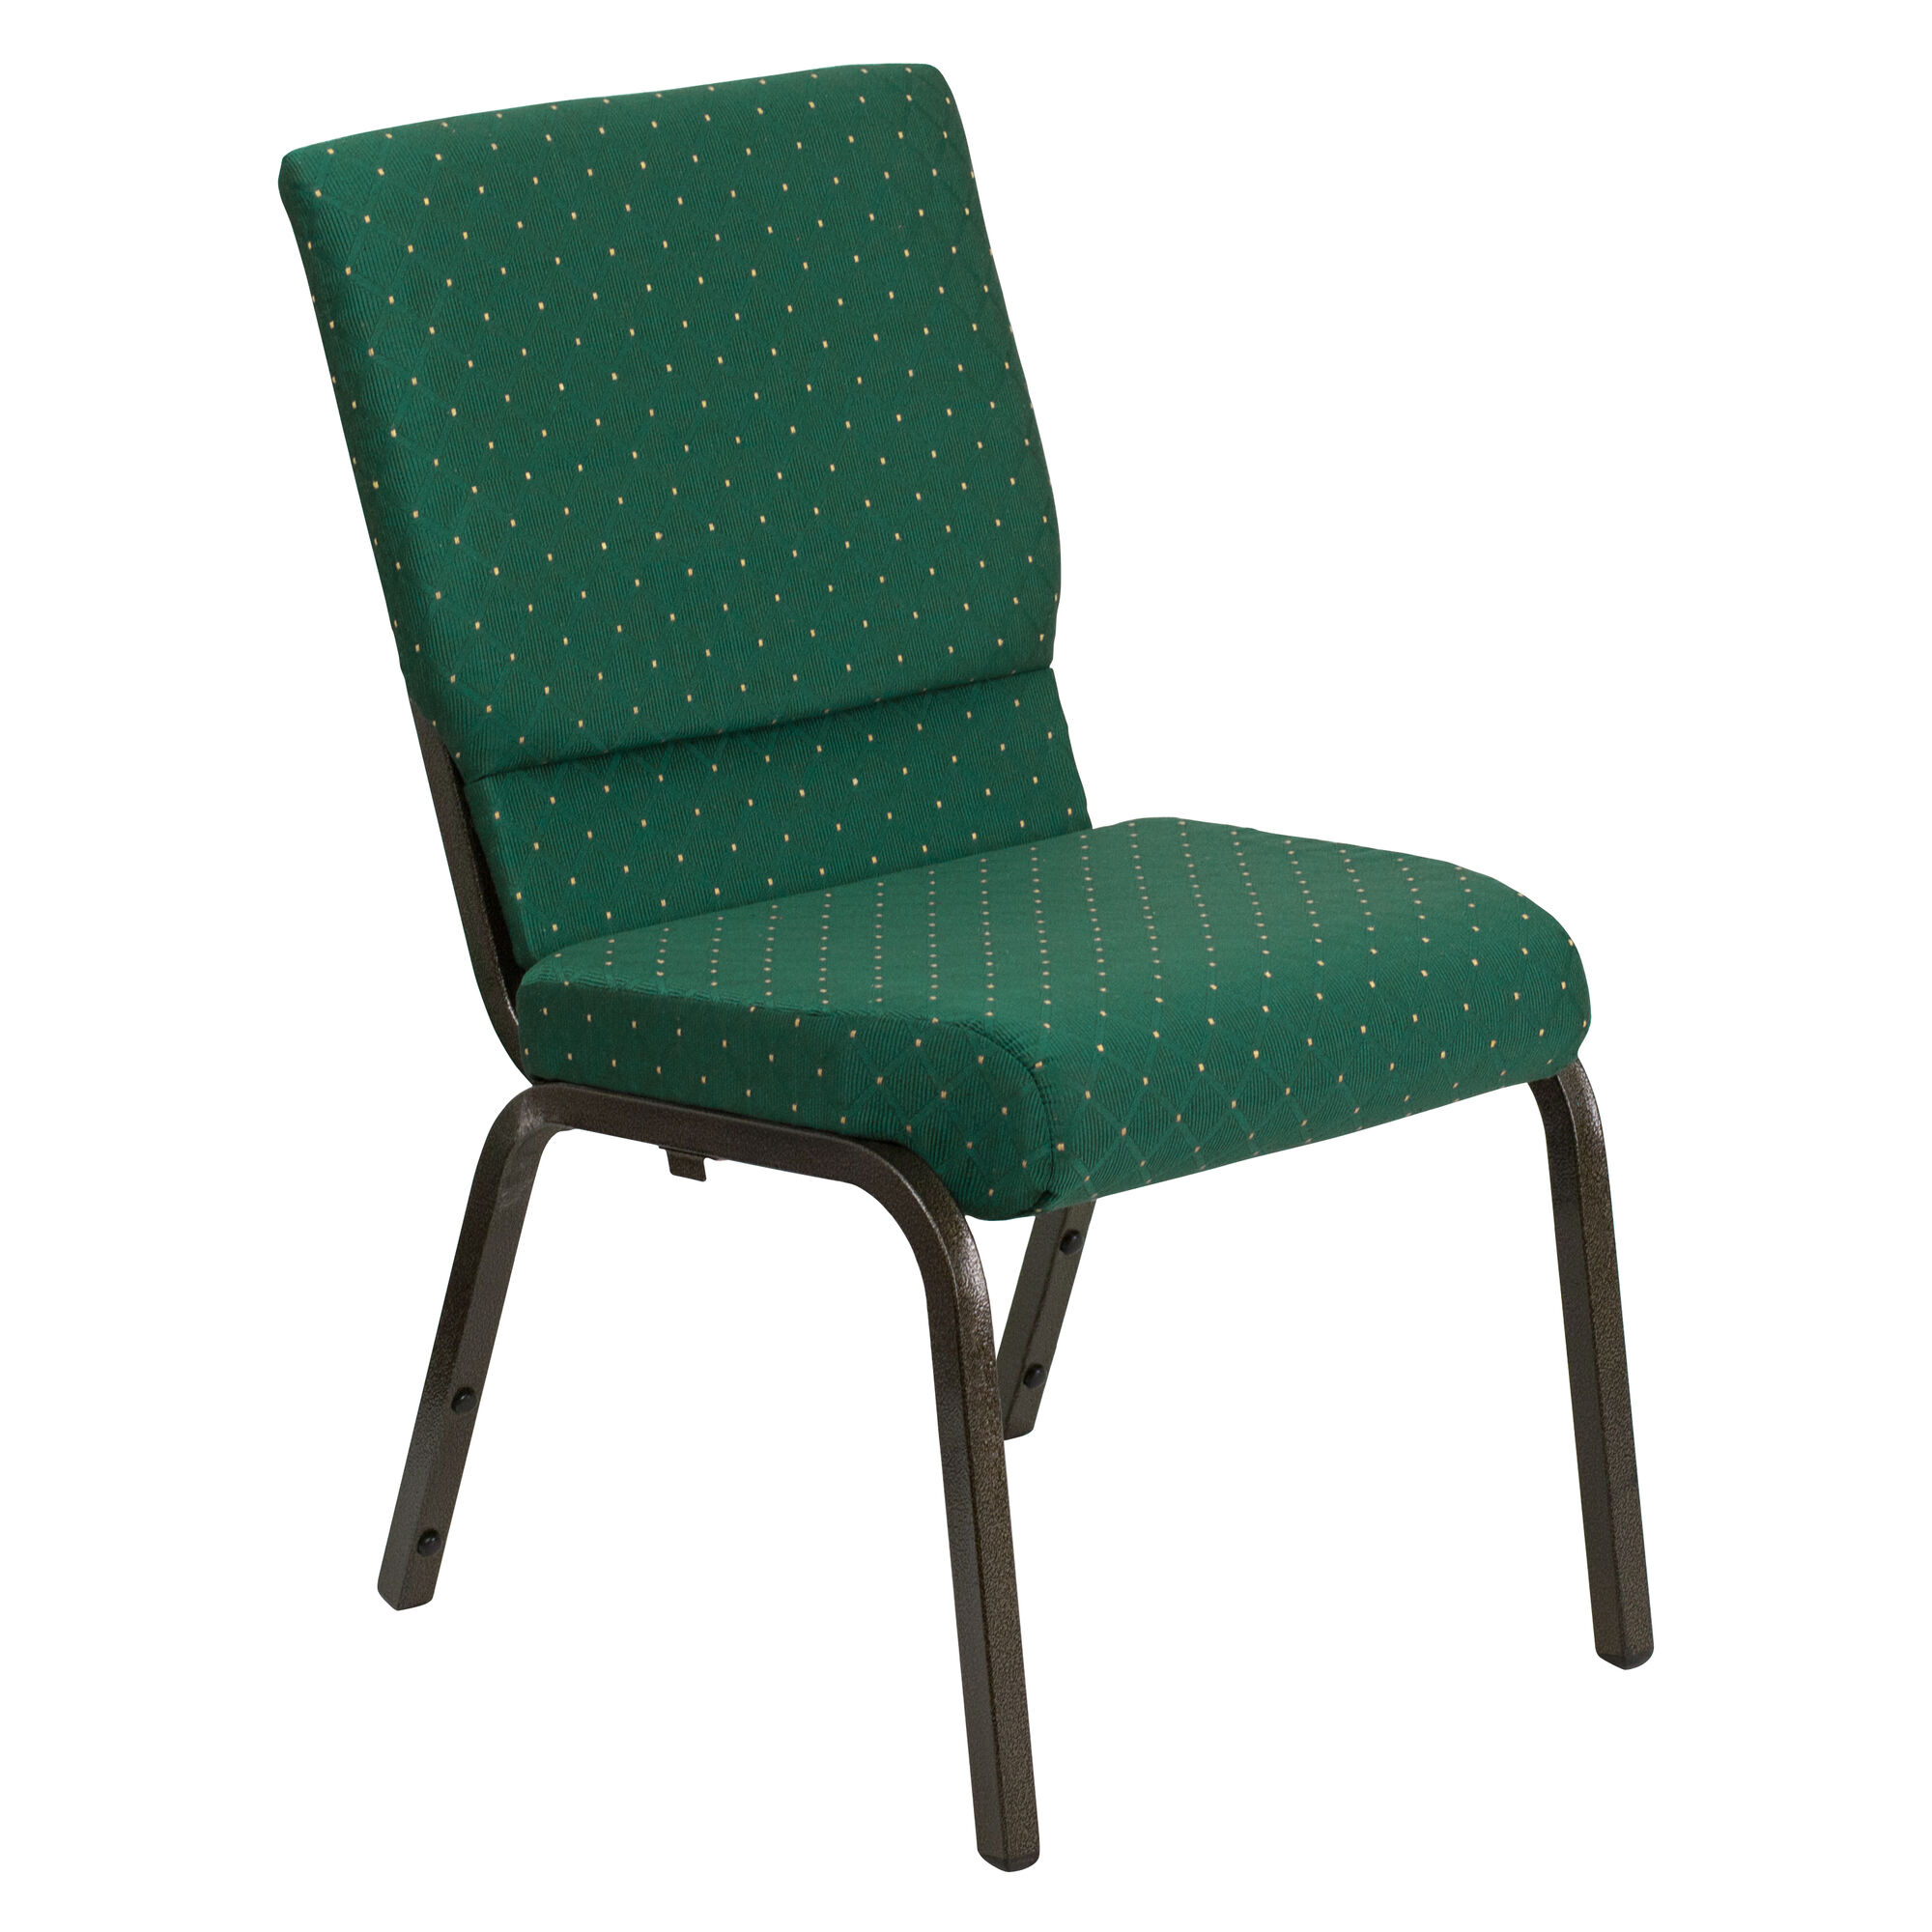 Green Fabric Church Chair Xu Ch 60096 Gn Gg